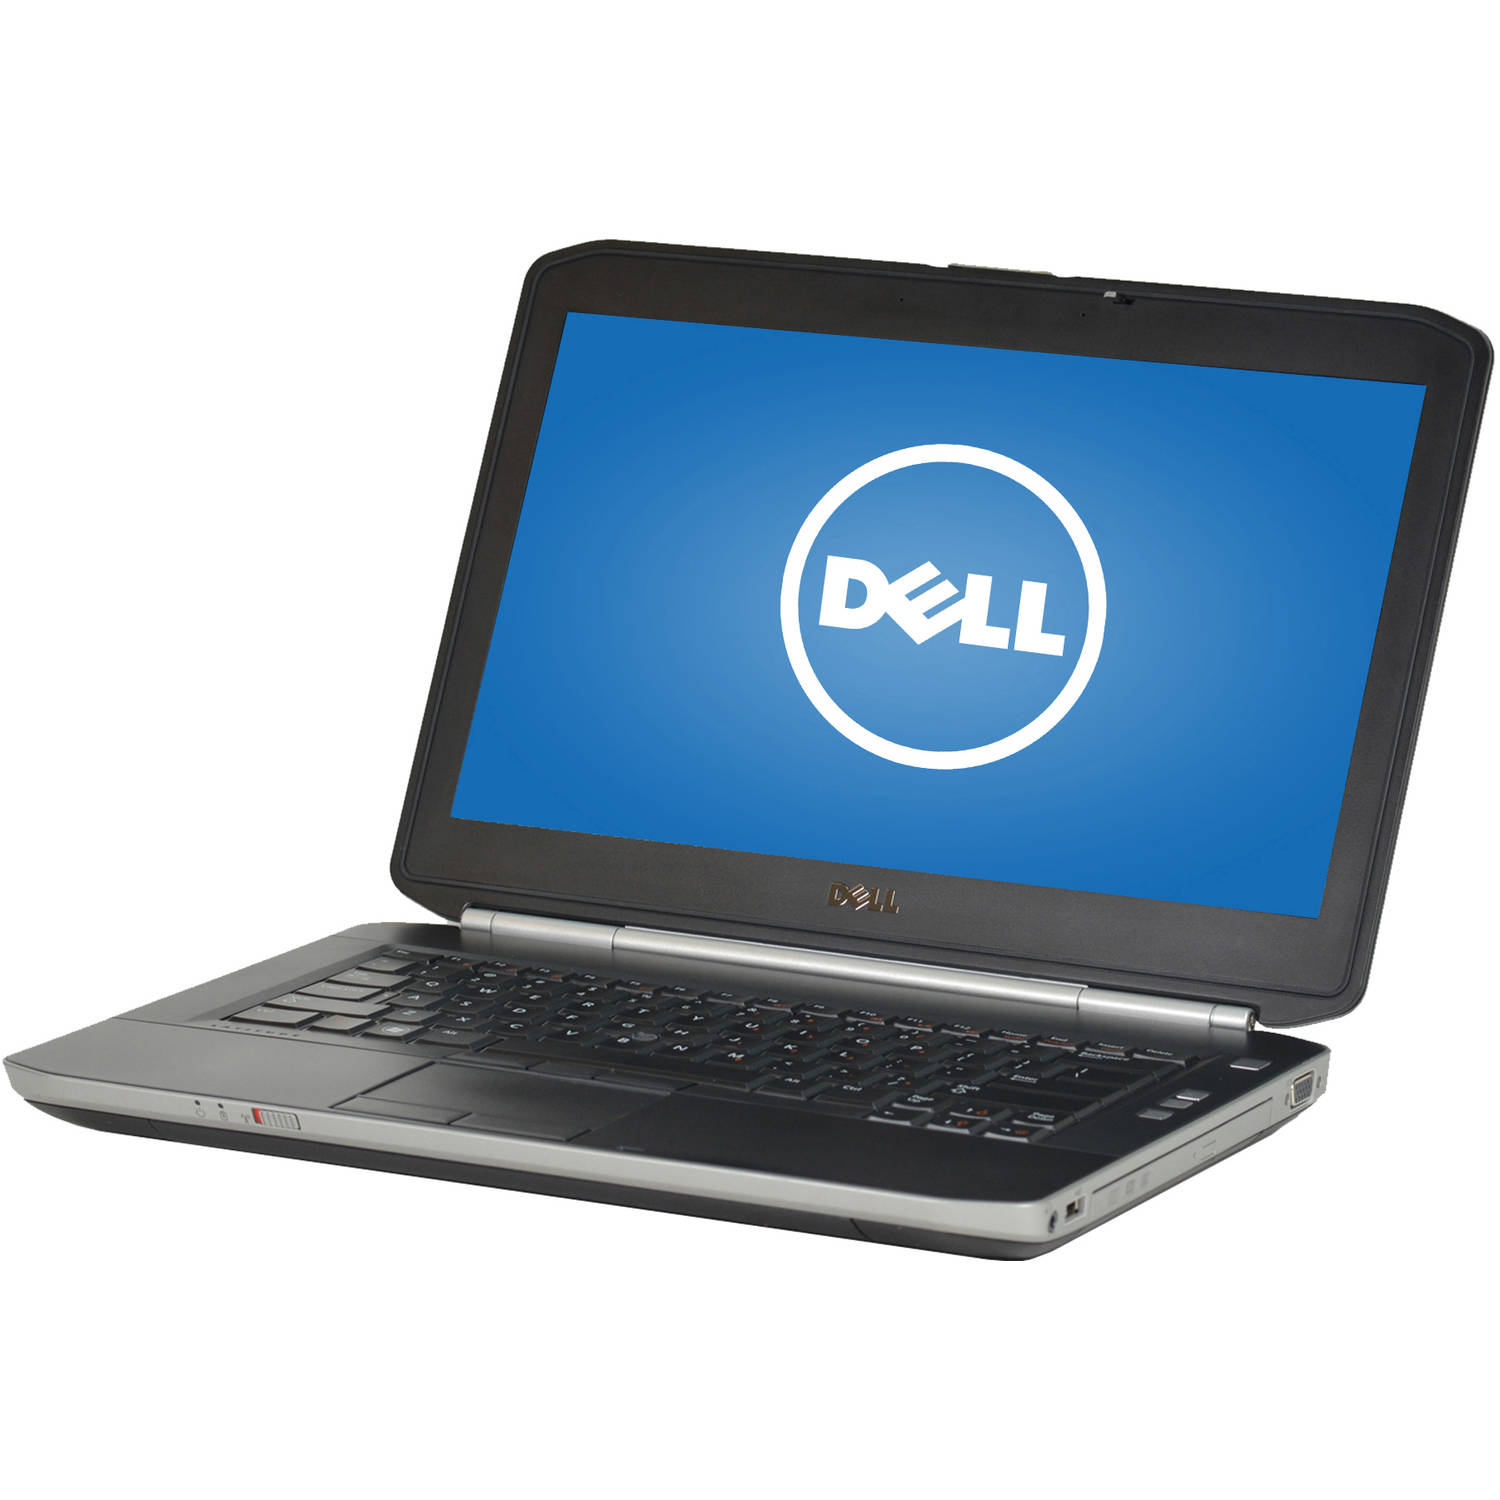 "Refurbished Dell 14"" E5420 Laptop PC with Intel Core i5 Processor, 4GB Memory, 128GB Hard Drive, Windows 10 Pro"